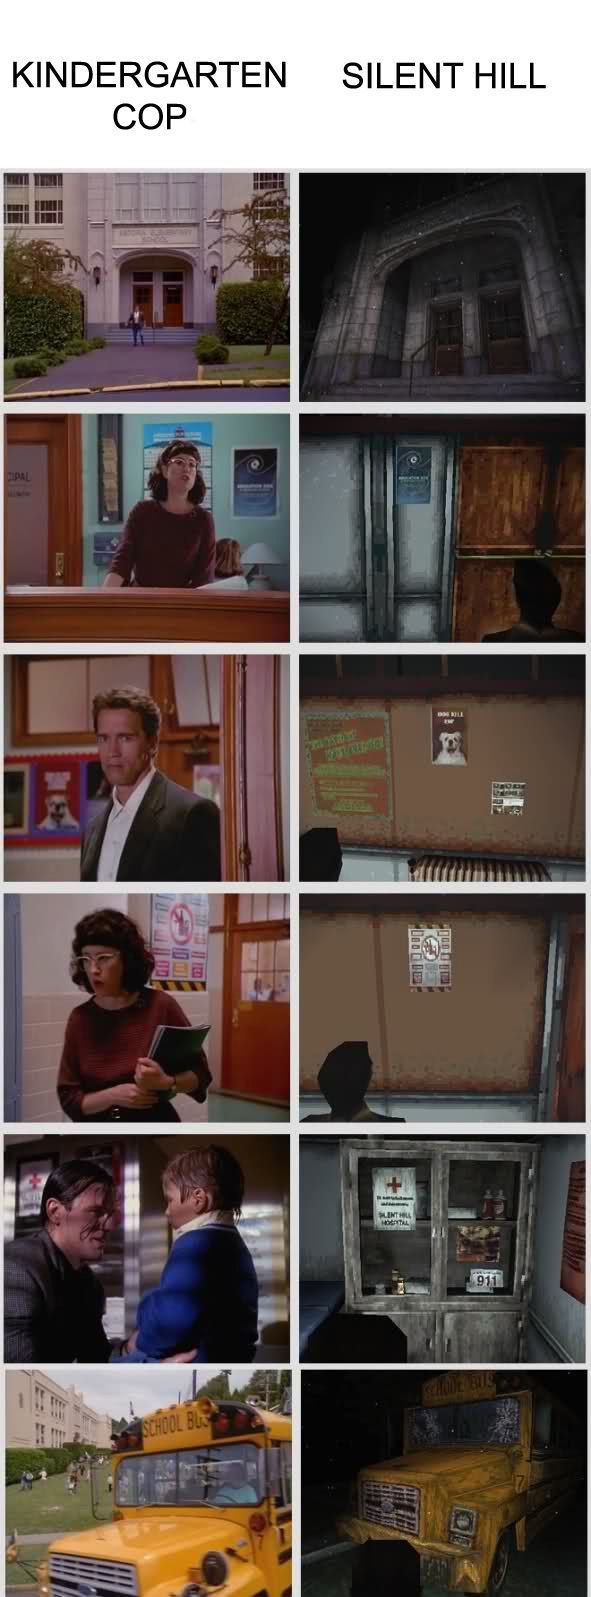 Kindergarten Cop is SilentHill Silent hill movies